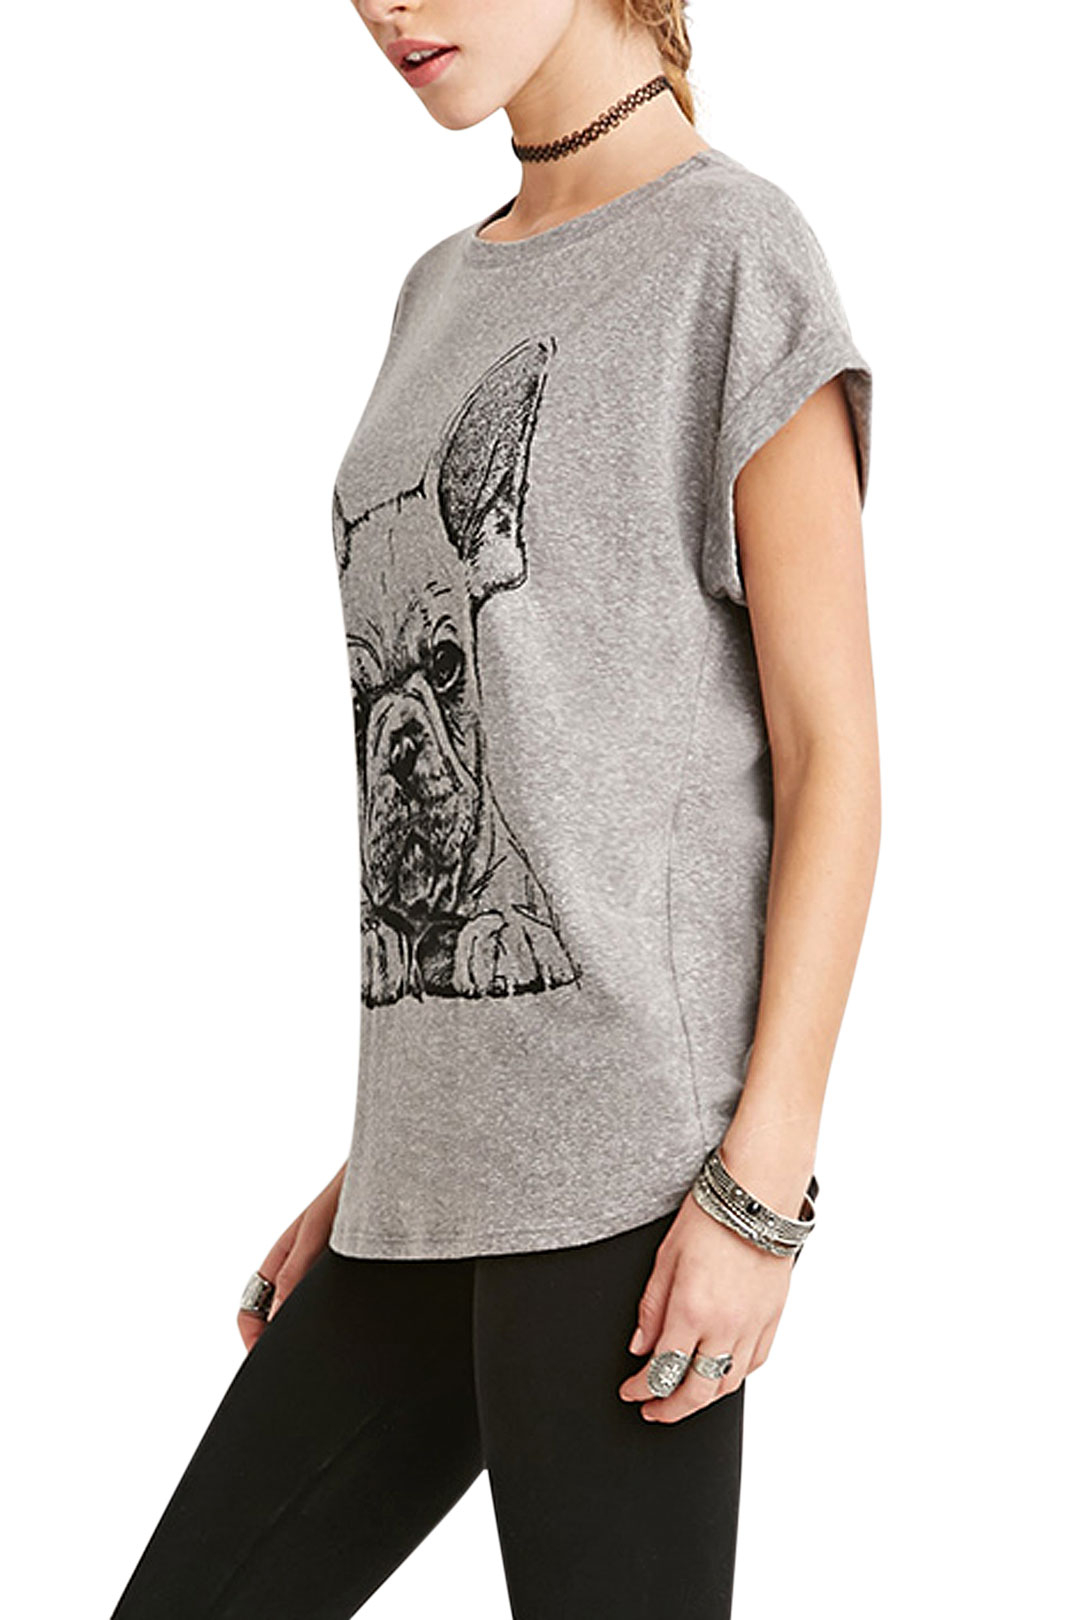 Dog Print Short Sleeve T-shirt In Grey от Yoins.com INT